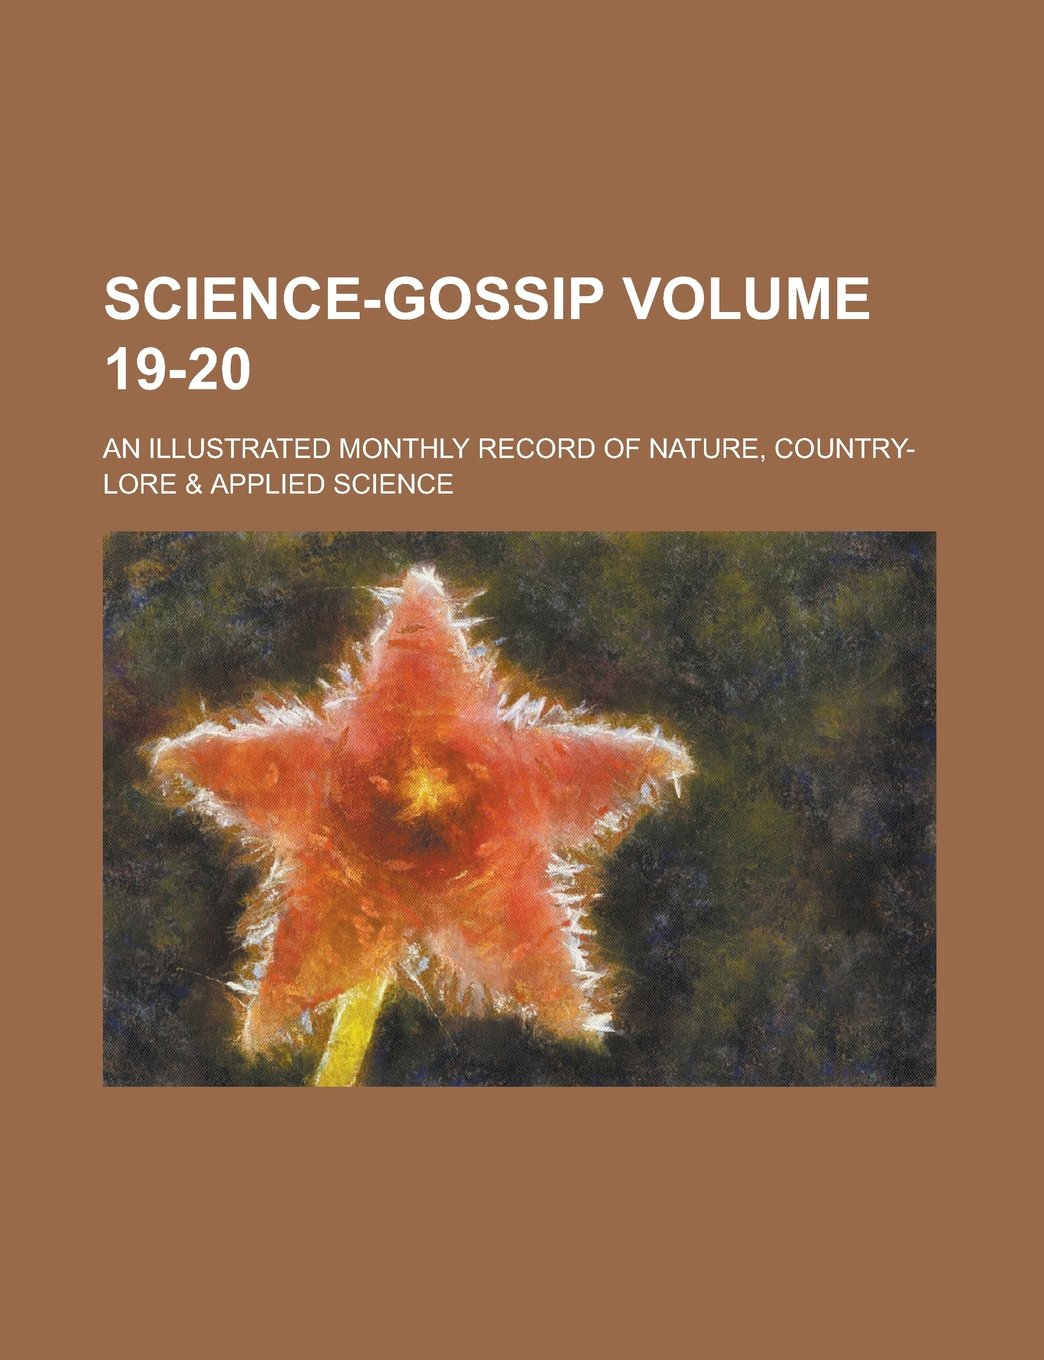 Science-gossip; An illustrated monthly record of nature, country-lore & applied science Volume 19-20 PDF